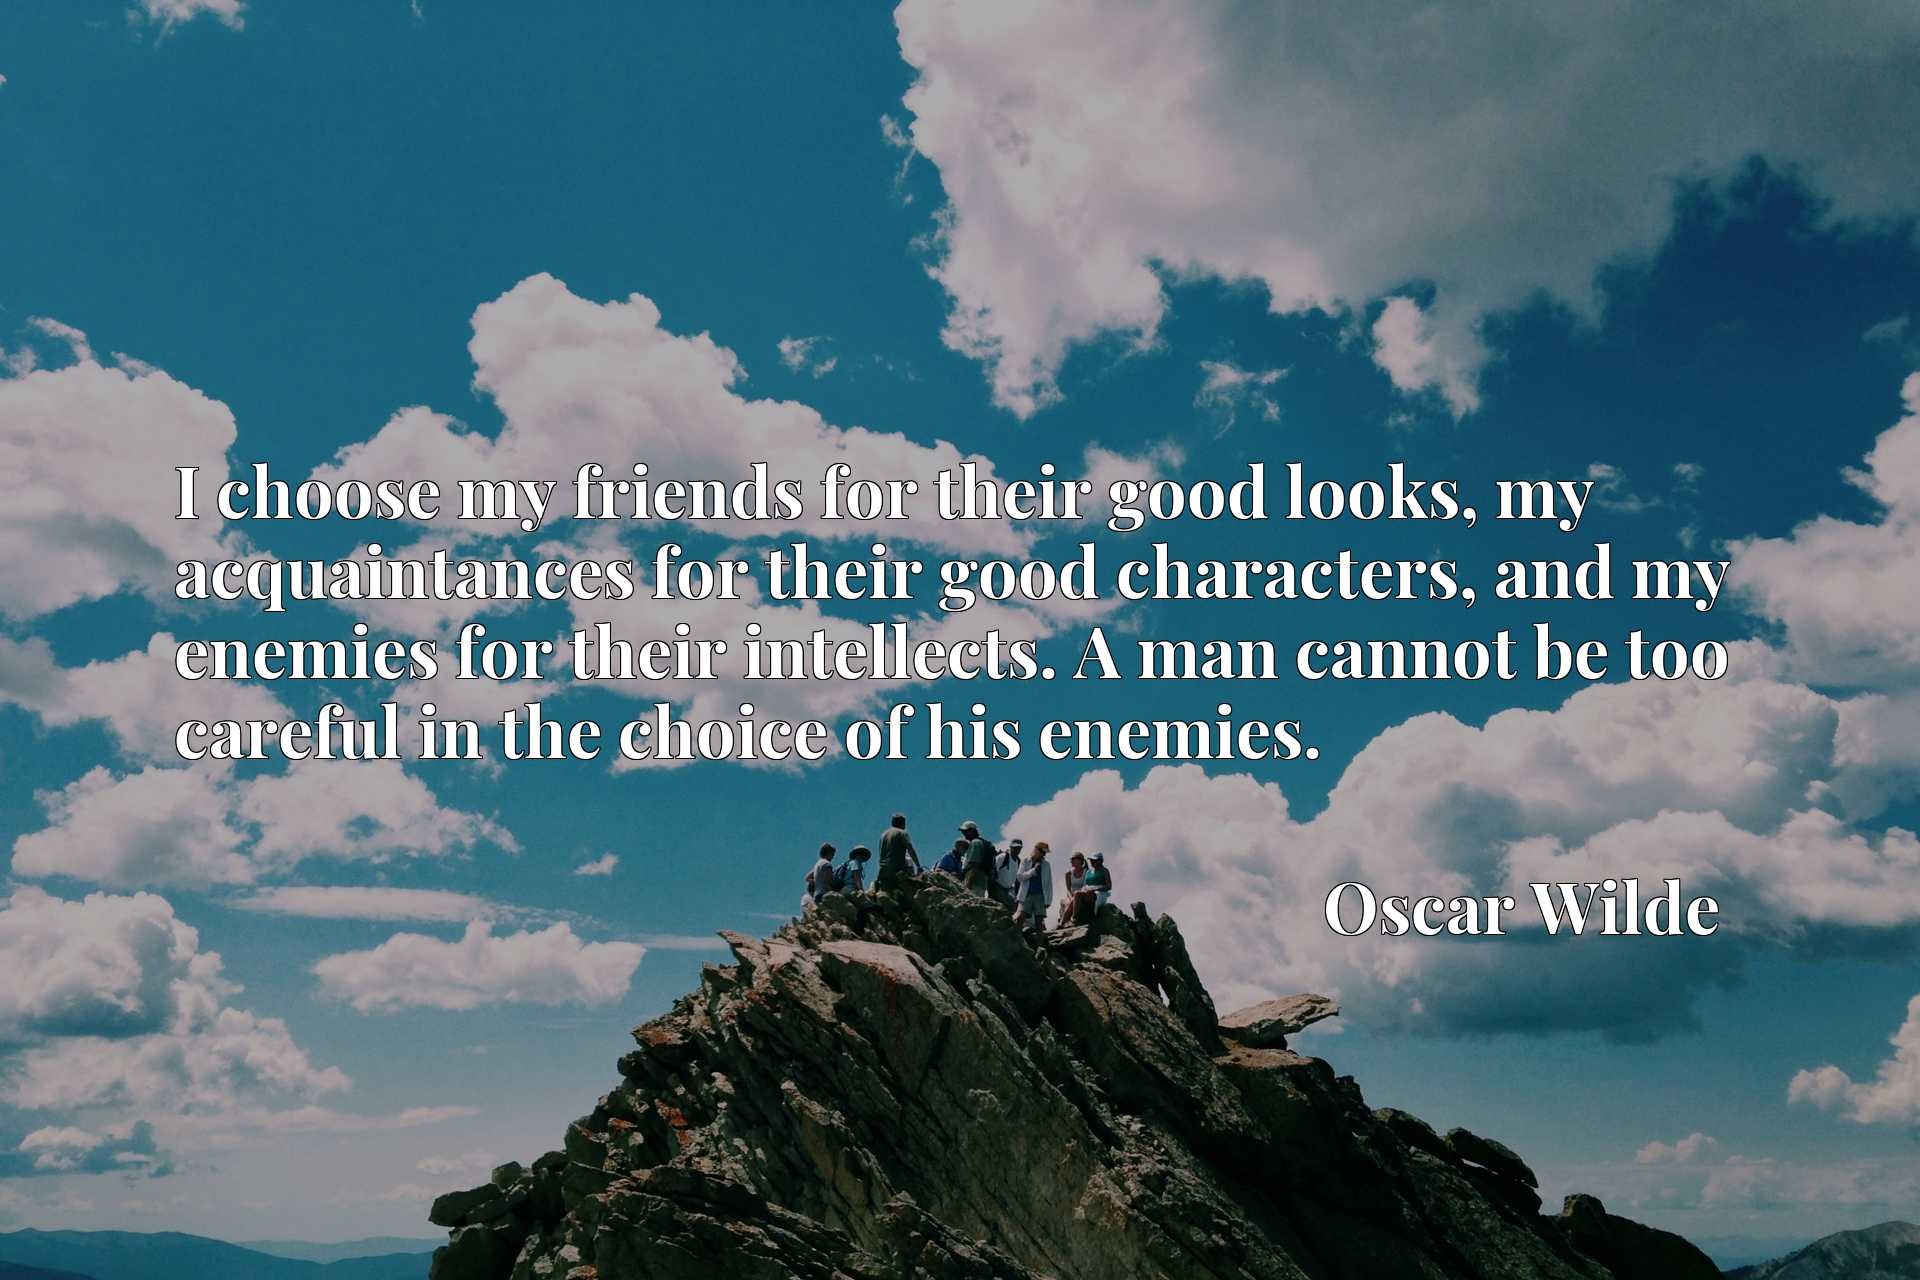 I choose my friends for their good looks, my acquaintances for their good characters, and my enemies for their intellects. A man cannot be too careful in the choice of his enemies.